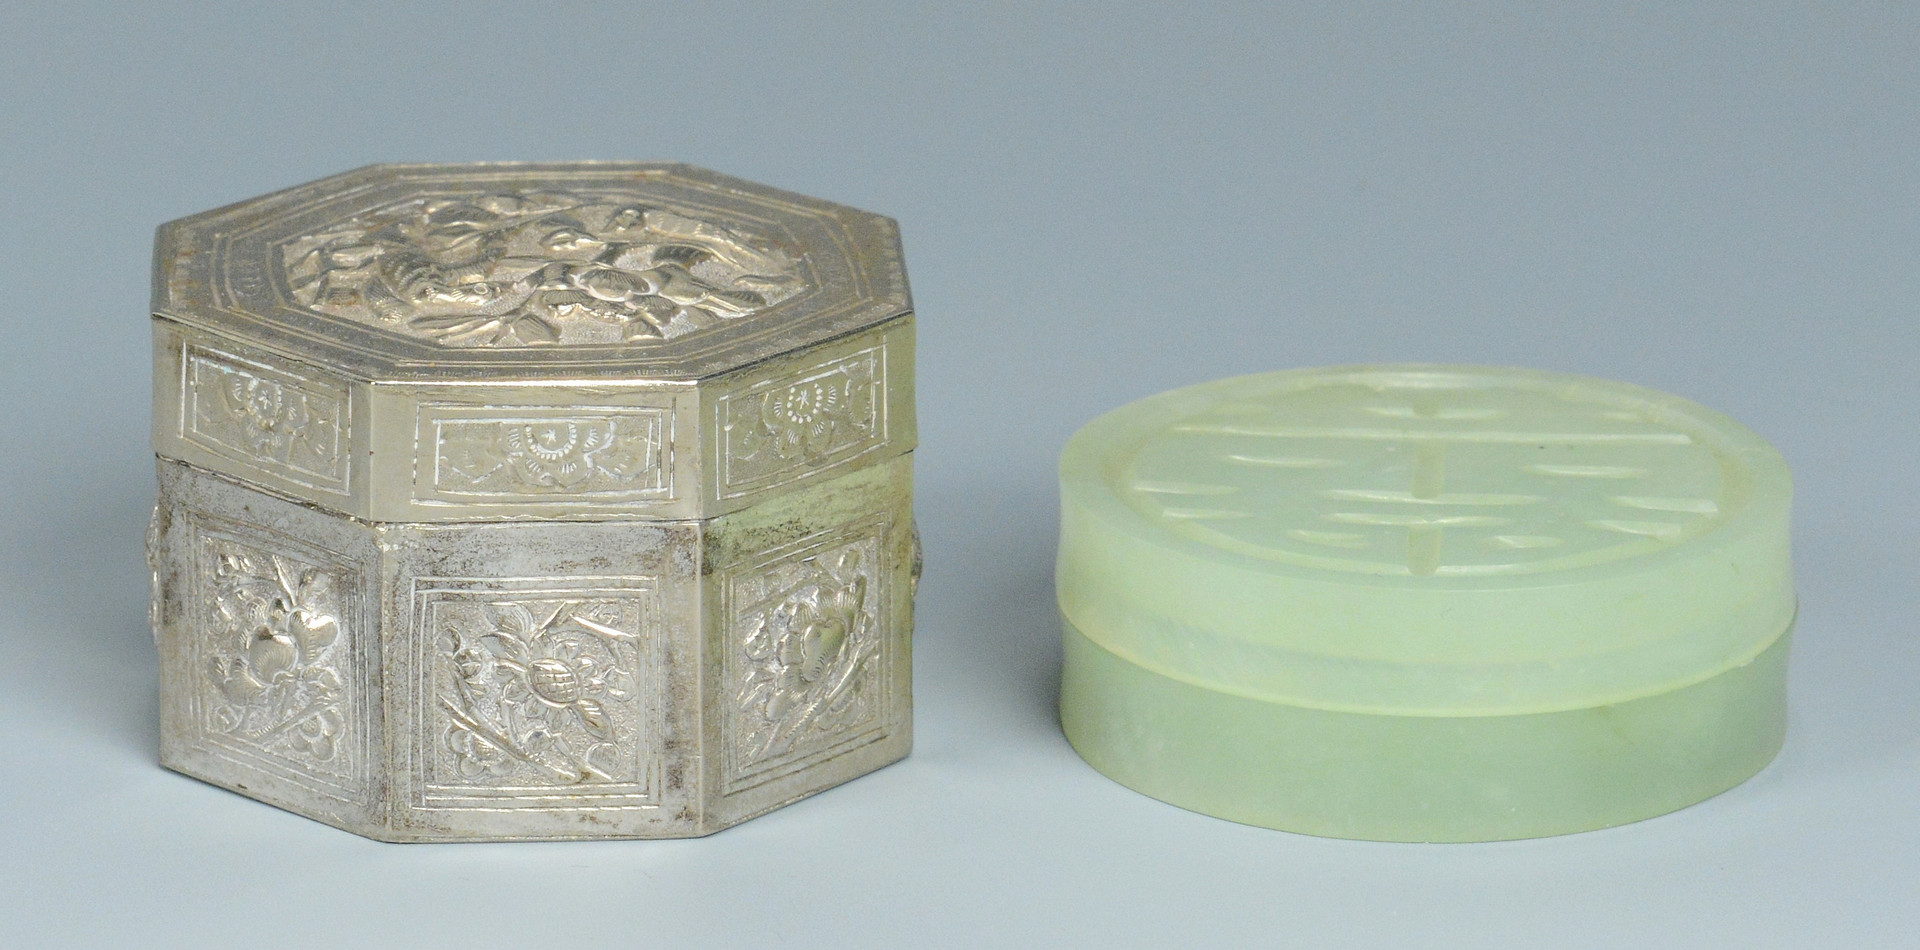 Lot 479: Chinese Silver and Jade Boxes